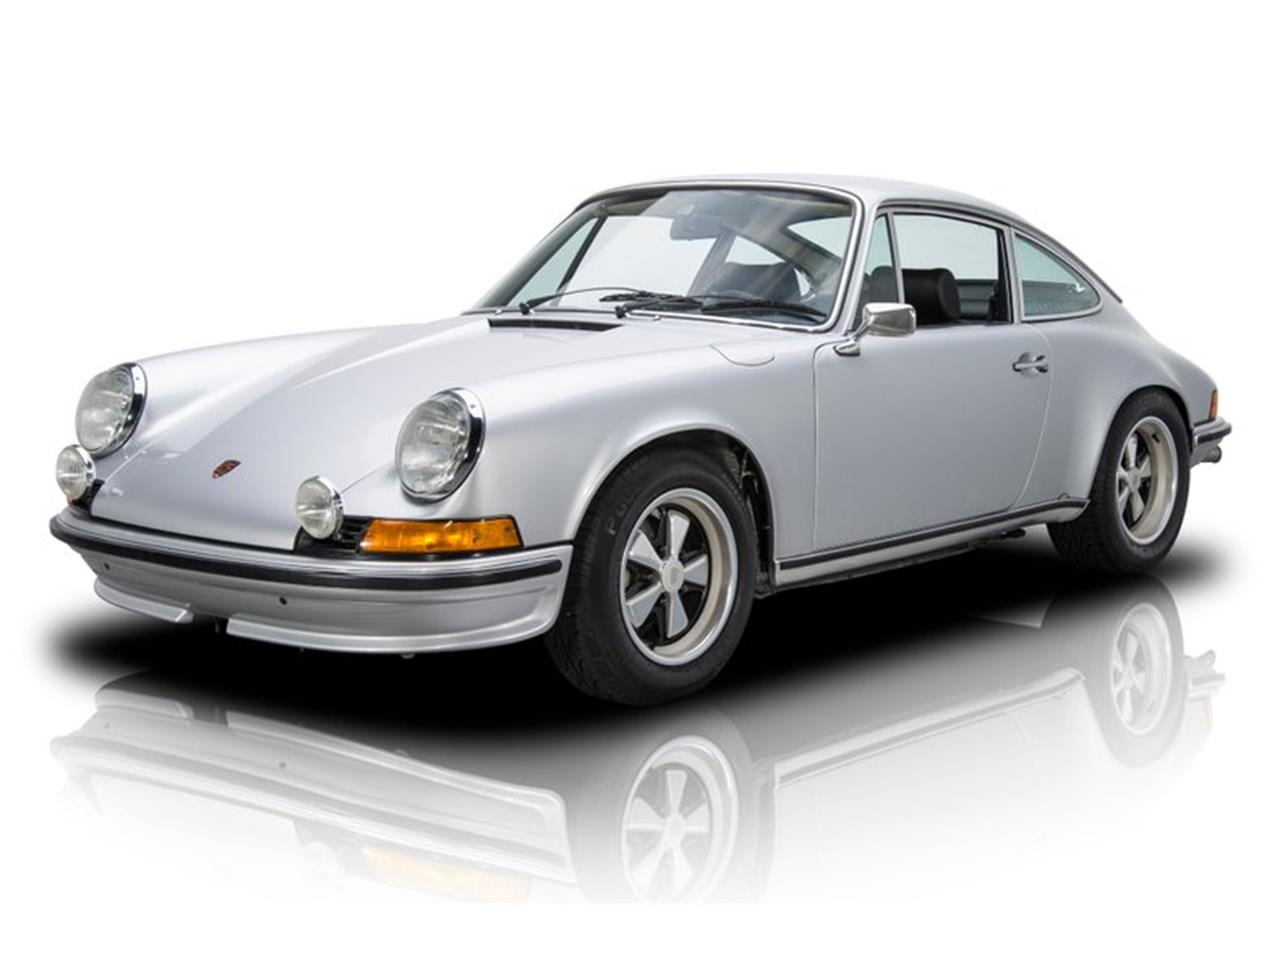 Large Picture of '73 Porsche 911 located in Charlotte North Carolina - $349,900.00 Offered by RK Motors Charlotte - MFCY